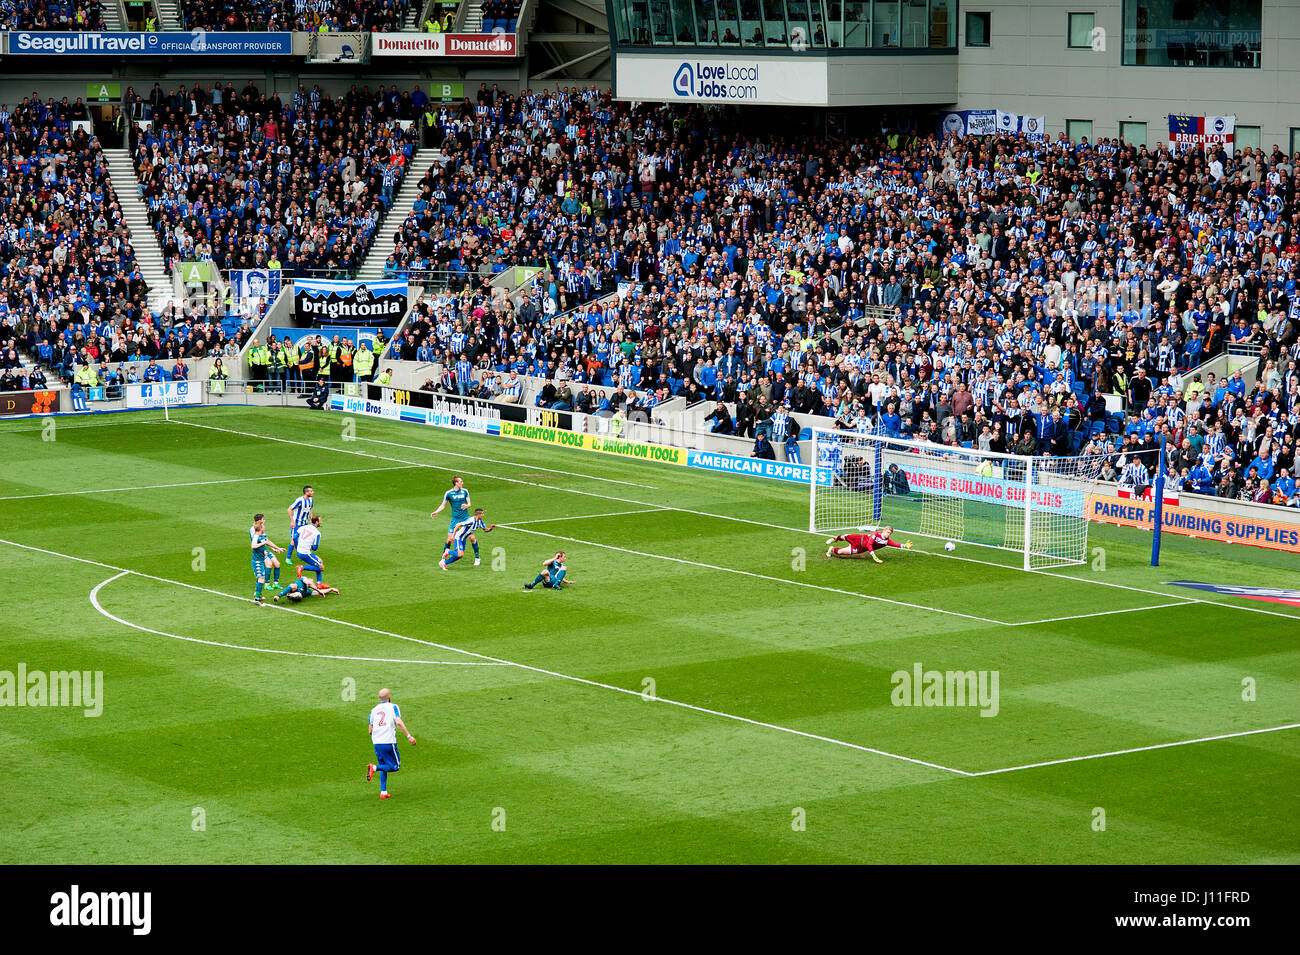 Glenn Murray scores a goal for Brighton and Hove Albion versus Wigan to help his side up to the English Premiership - Stock Image